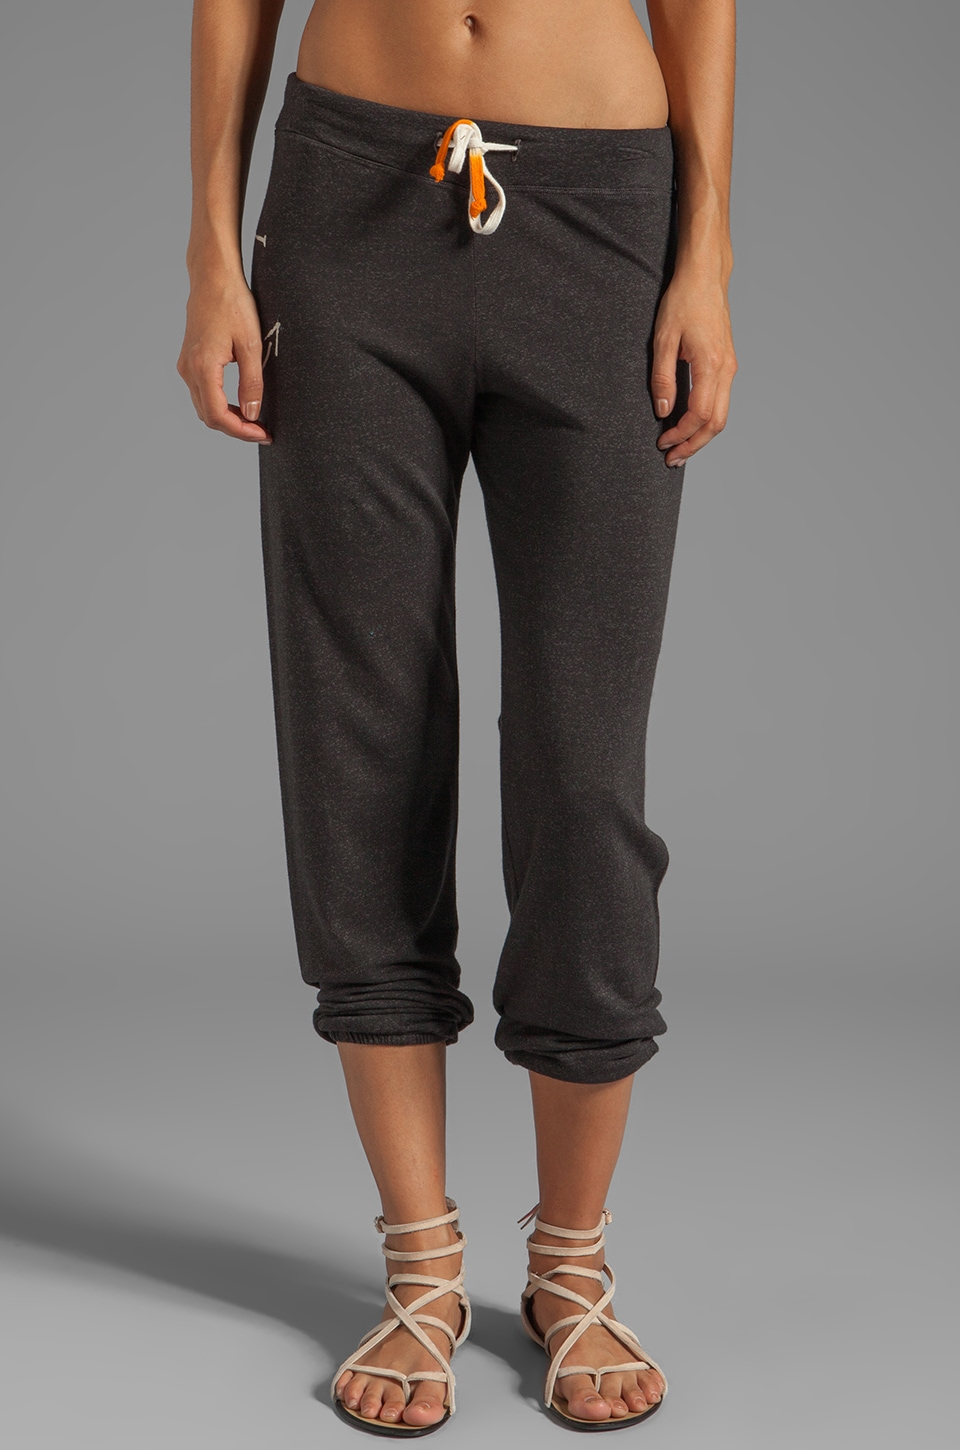 SUNDRY Anchor Classic Sweatpants in Old Black